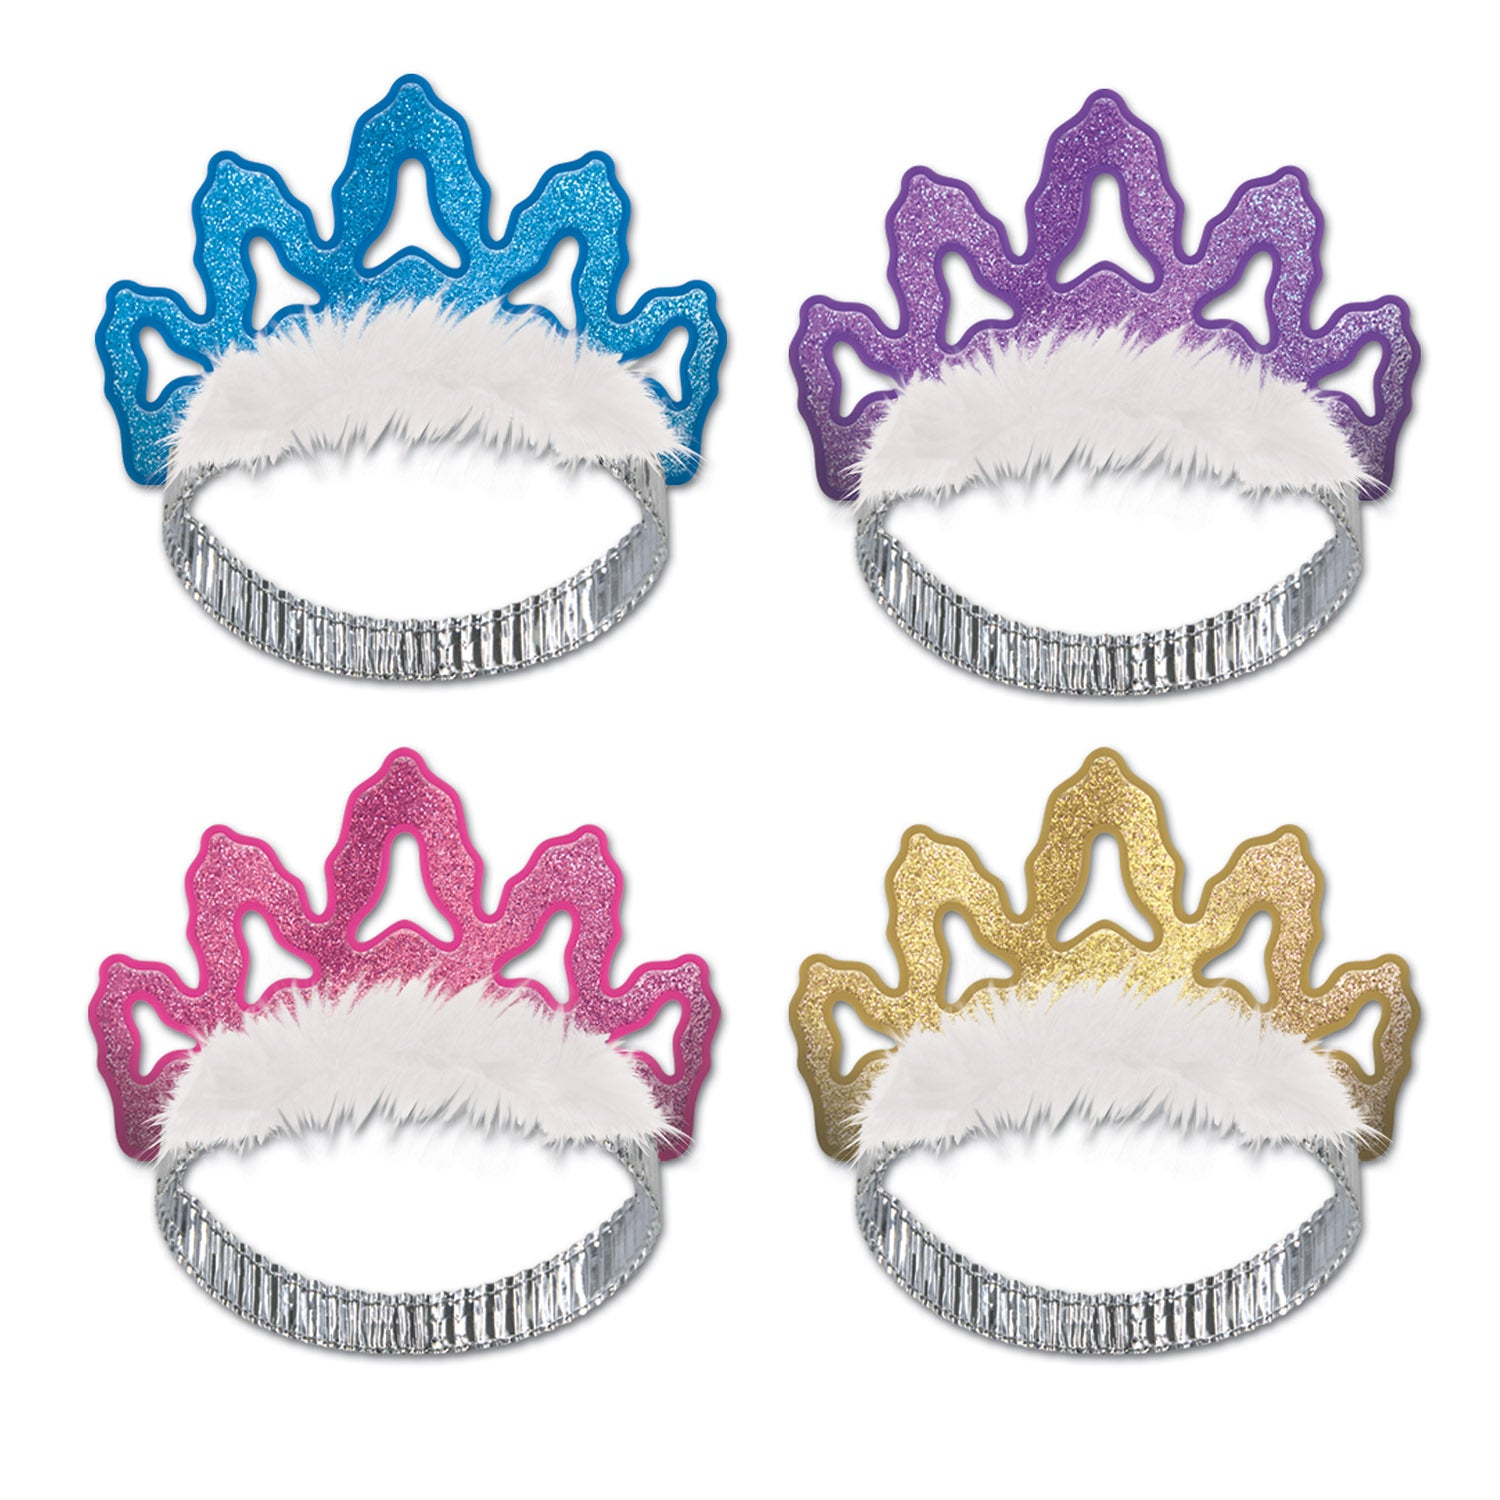 Packaged Coronet Tiaras (4/Pkg) by Beistle - General Occasion Decorations